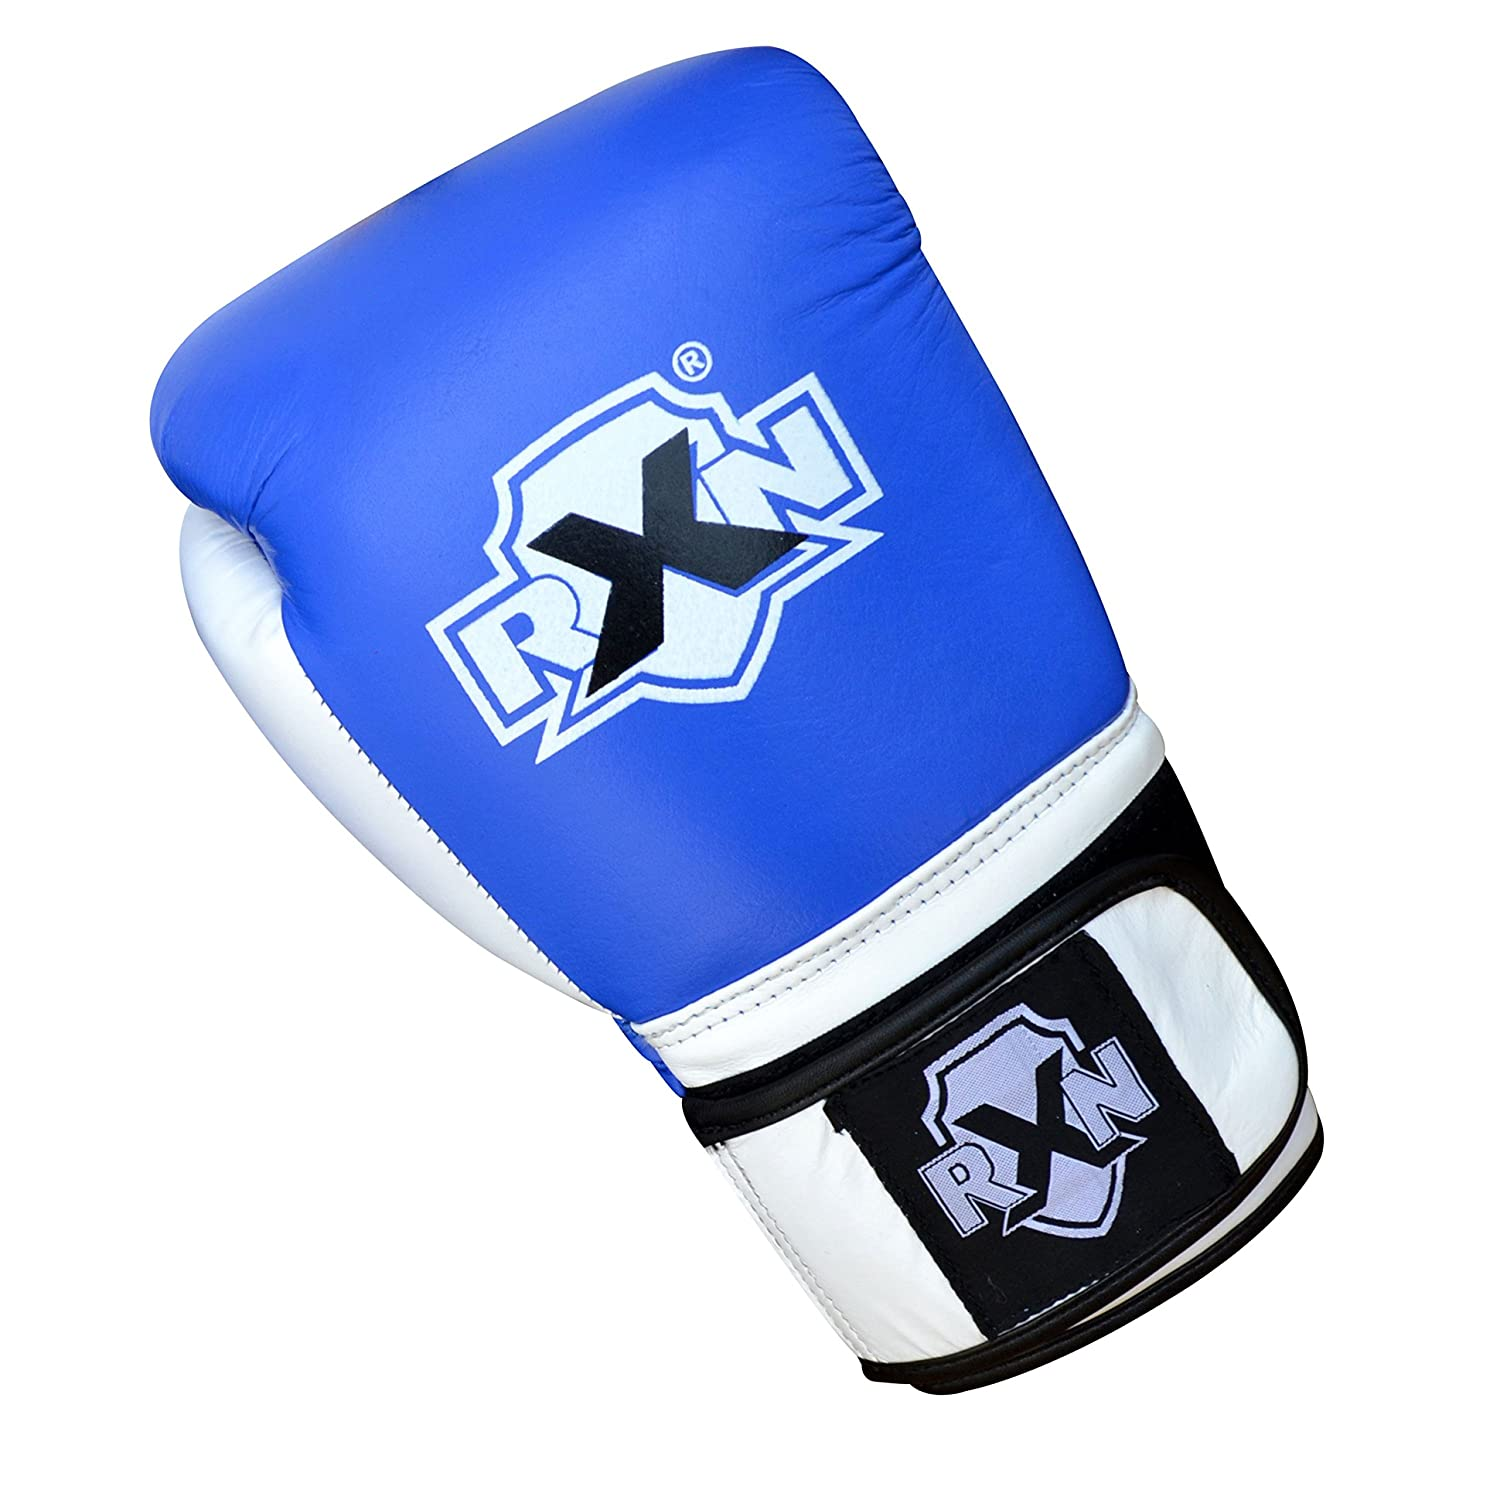 RXN First TIME HIGH Top Boxing Gloves Pure Cowhide Leather Glove Blue//White